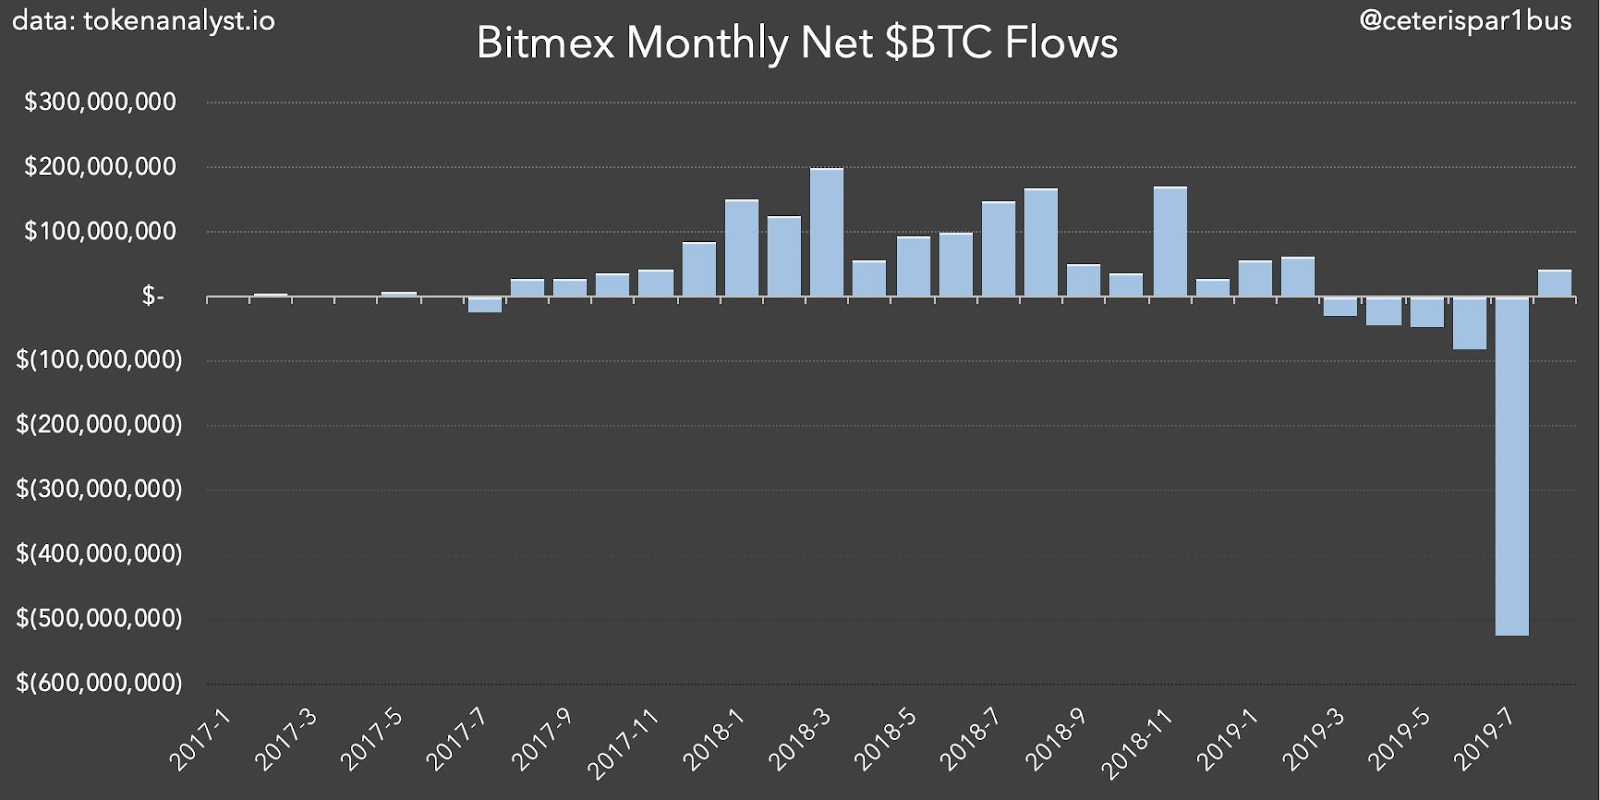 Bitmex monthly net Bitcoin flows